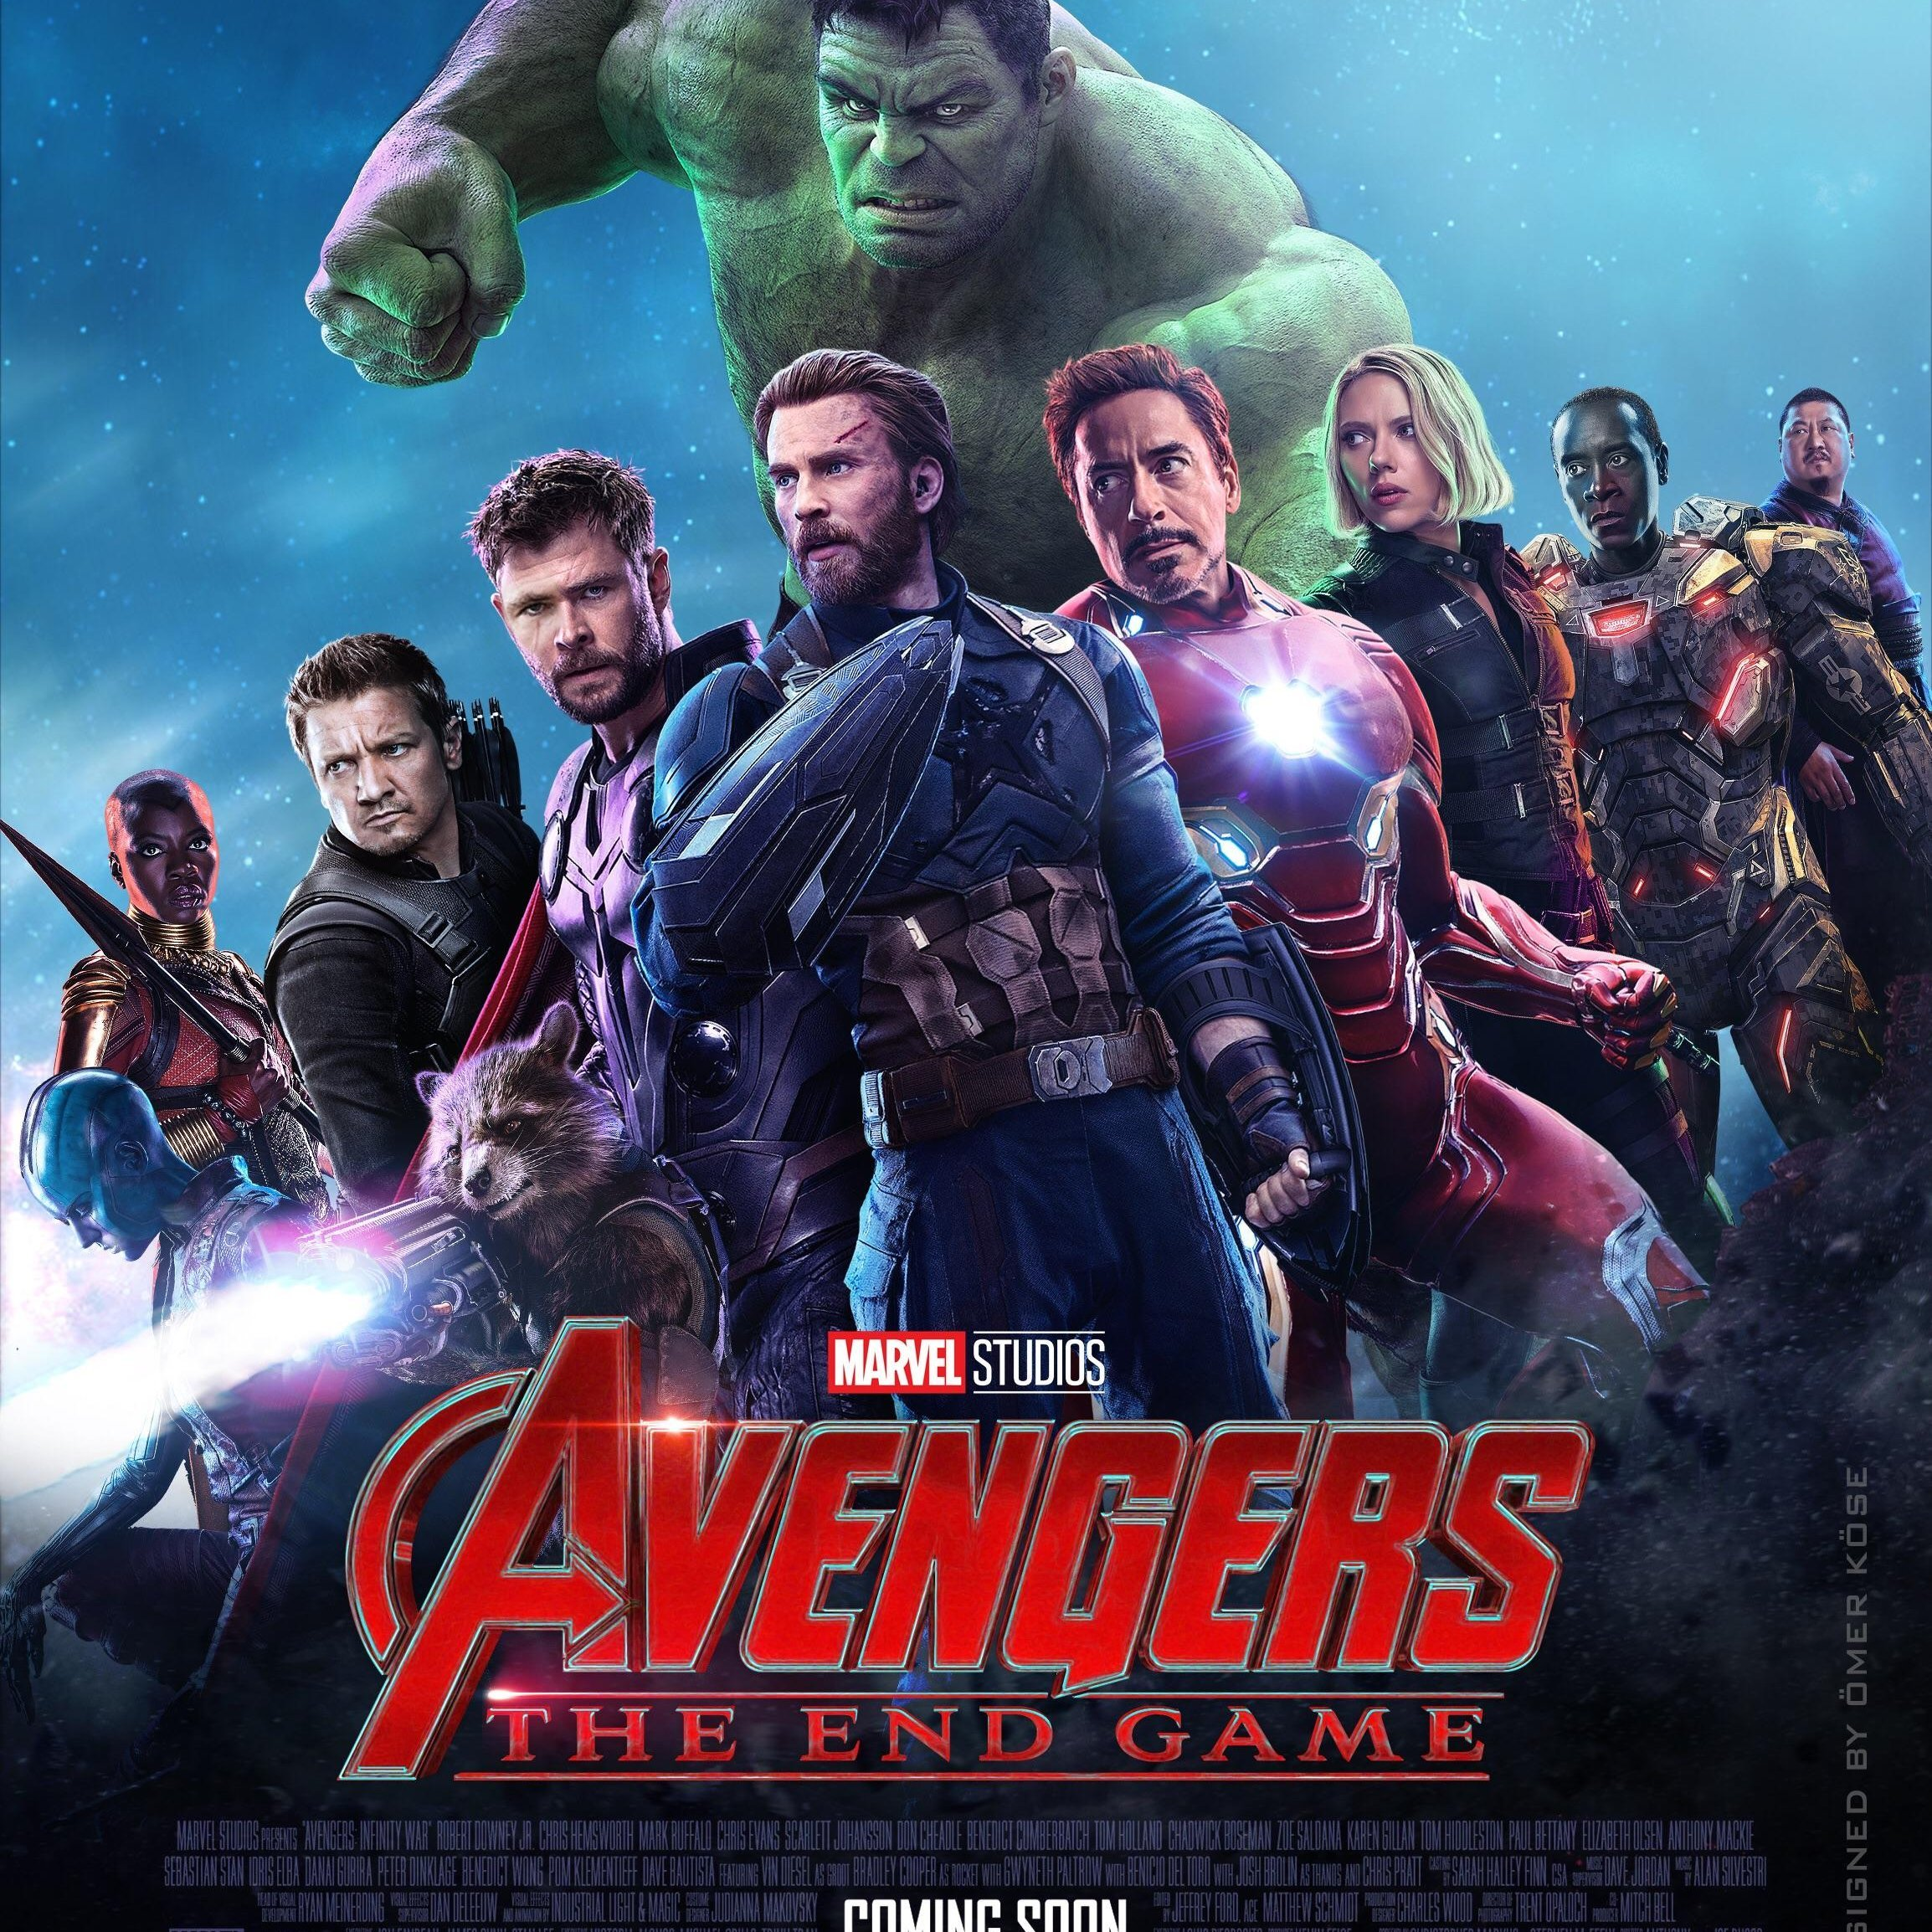 guarda**avengers endgame streaming ita -(openload/cb01)